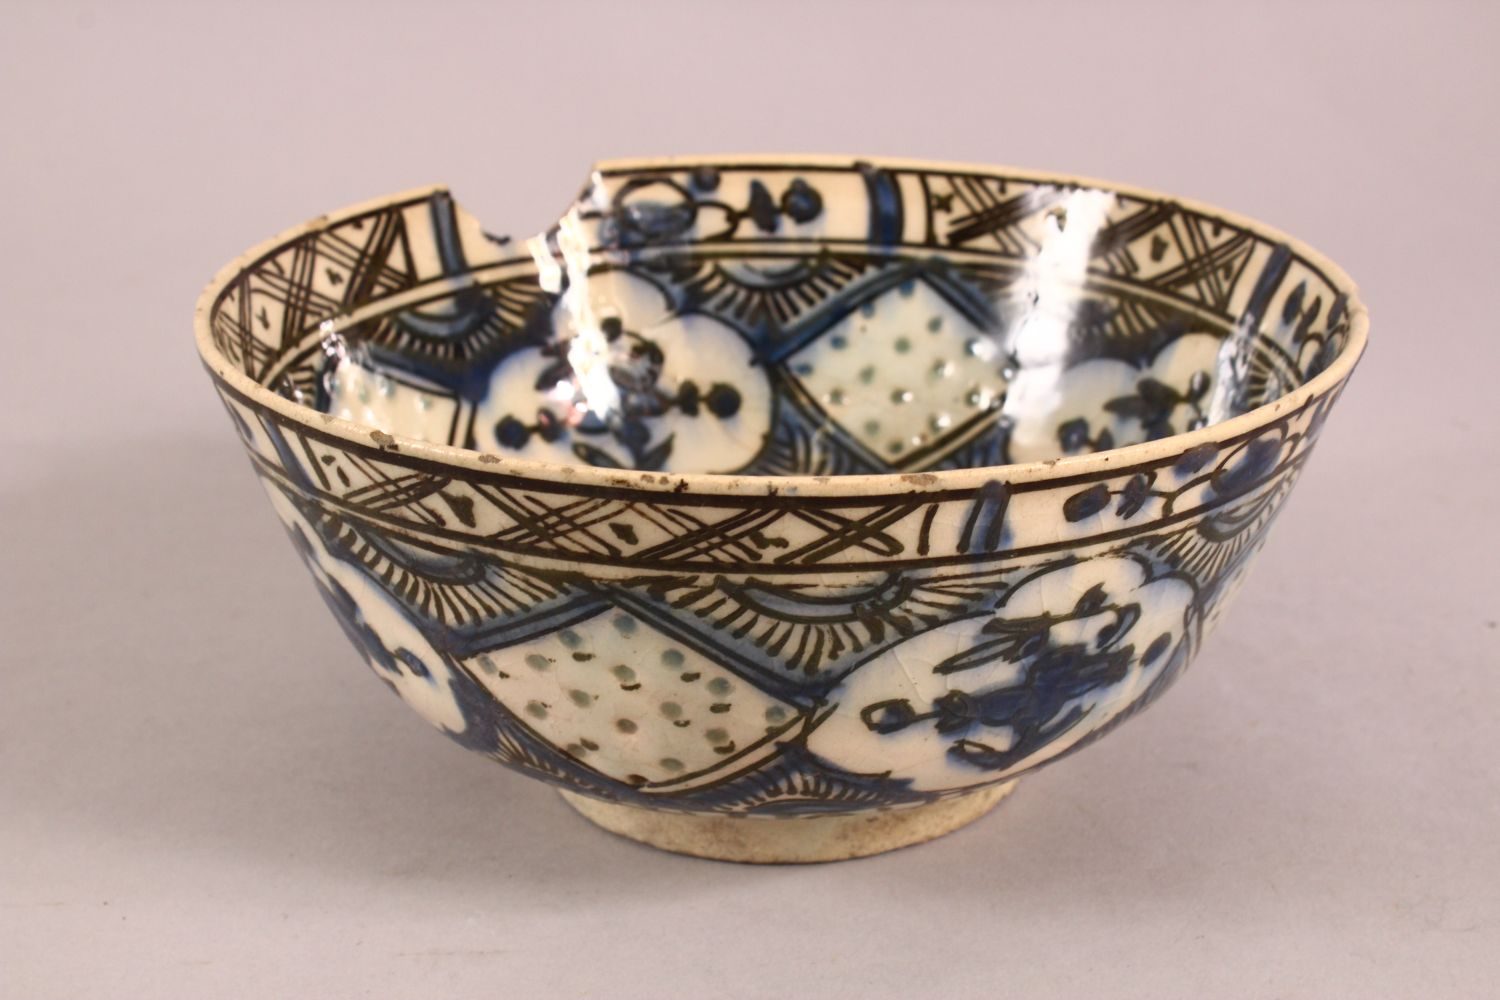 A 19TH CENTURY OR EARLIER TURKISH POTTERY BOWL, with floral motif decorations, (af) 18.5cm - Image 3 of 6